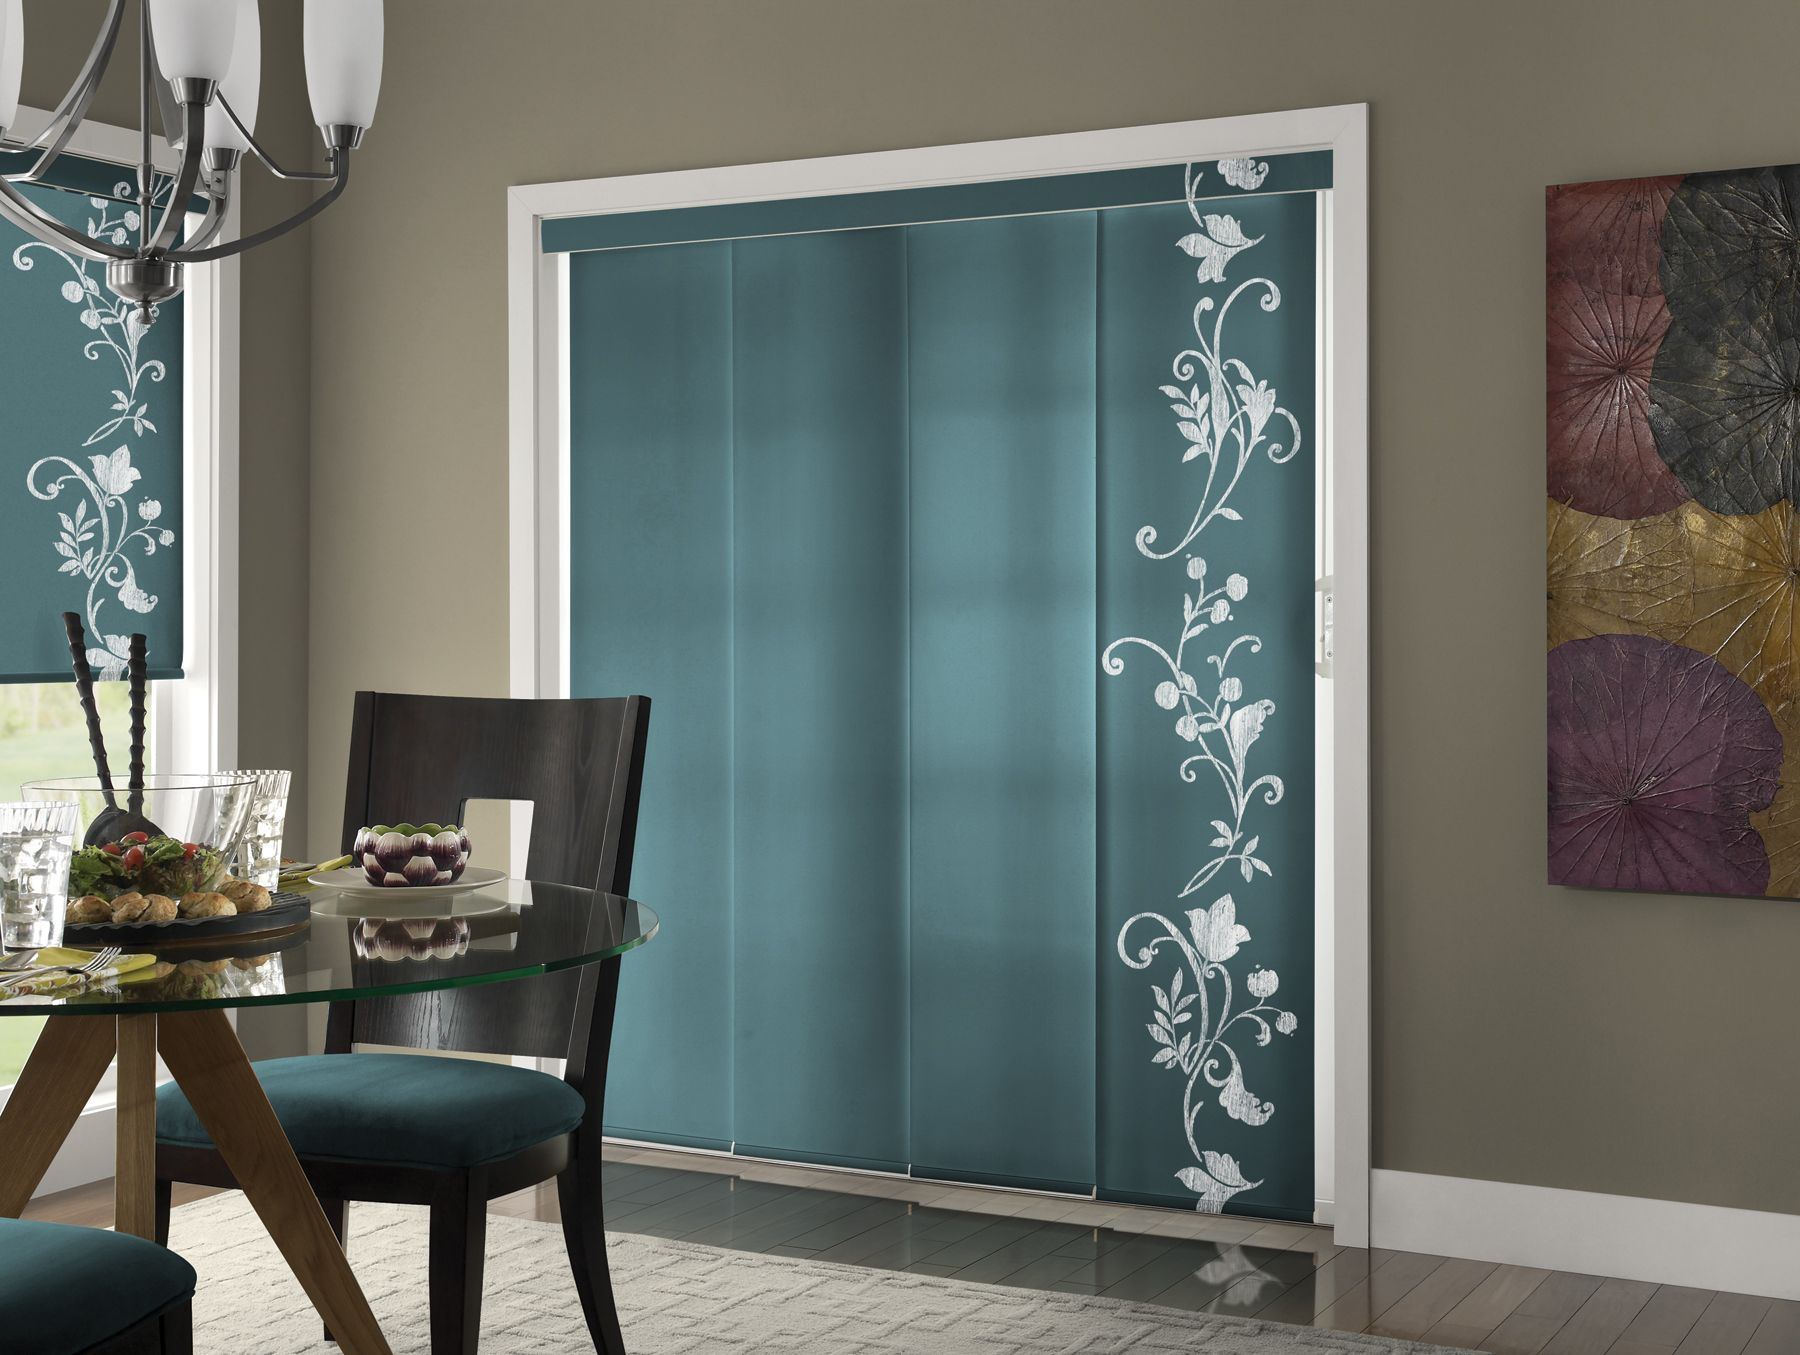 Window treatment ideas for sliding glass patio doors - Find This Pin And More On Curtains Ideas Alluring Sliding Glass Door Curtains With Patio